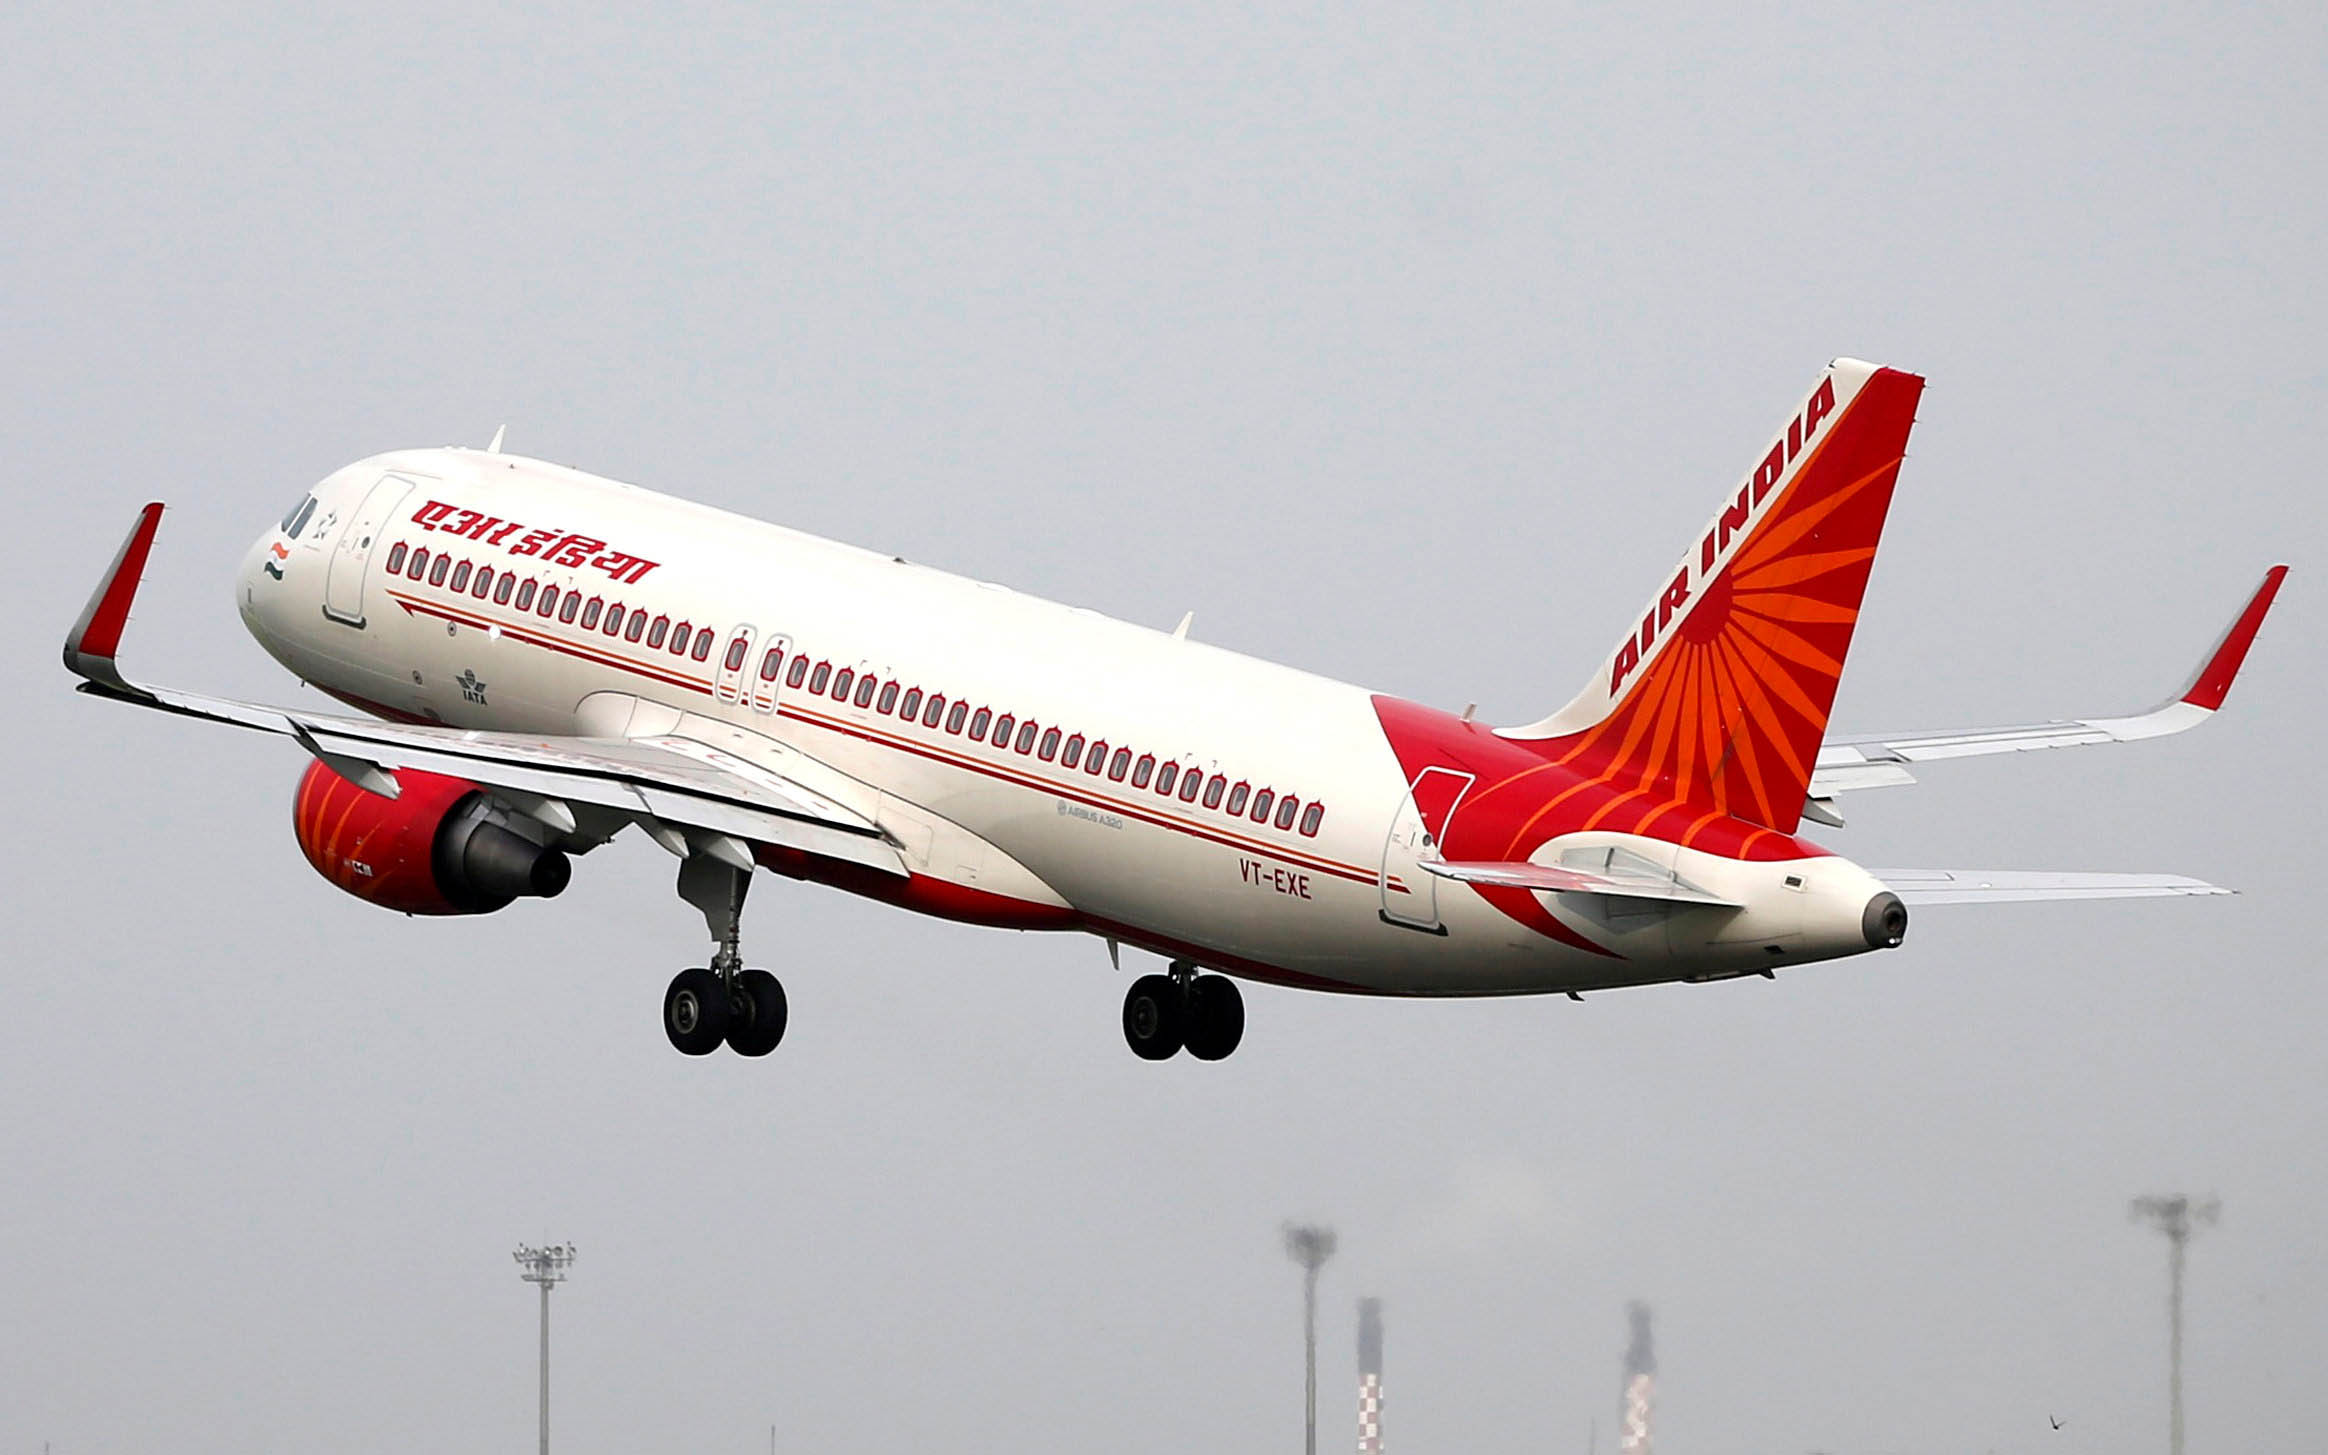 FILE PHOTO: An Air India aircraft takes off from the Sardar Vallabhbhai Patel International Airport in Ahmedabad, India, July 7, 2017.  Photo: Reuters